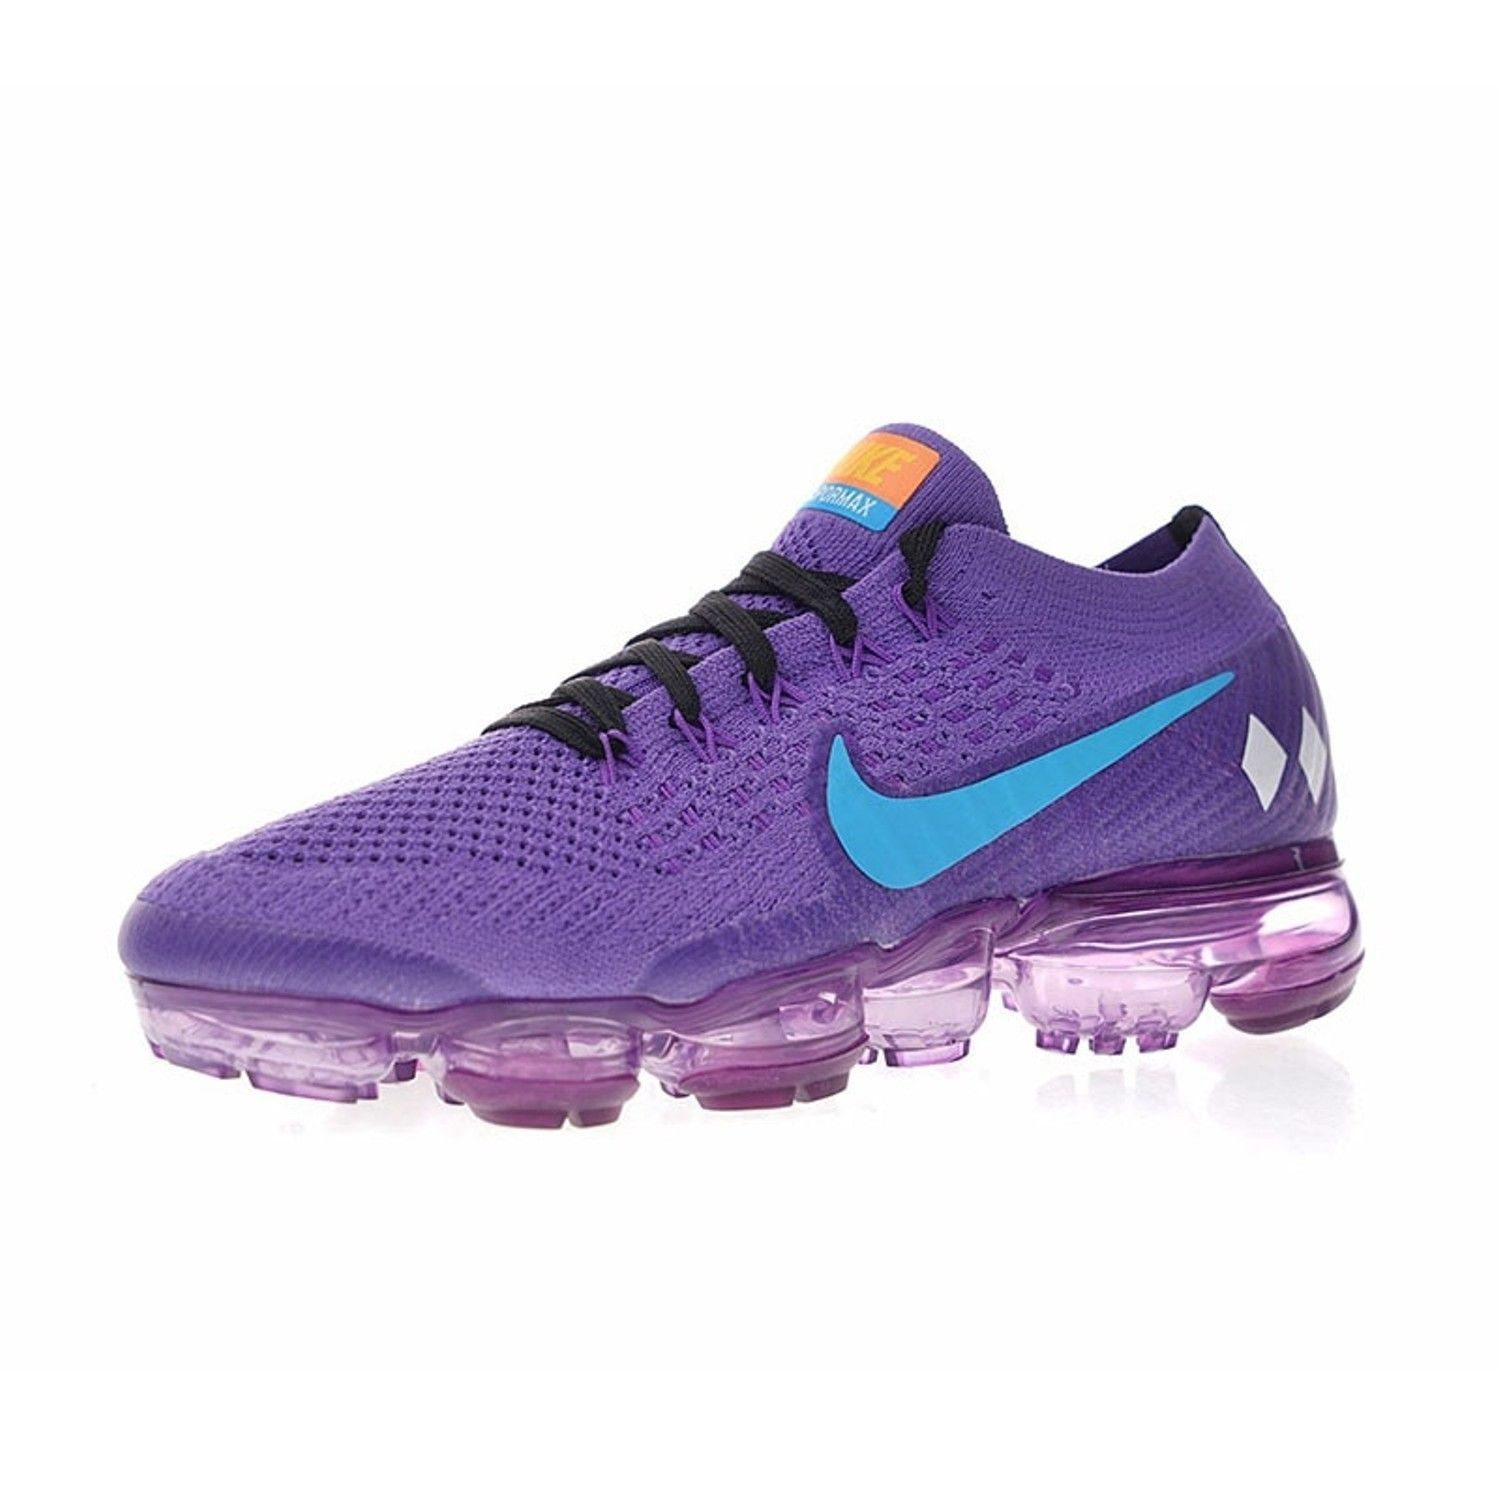 buy popular a9a05 f2a67 Original Authentic Nike Air Dragon Ball Z and 50 similar items